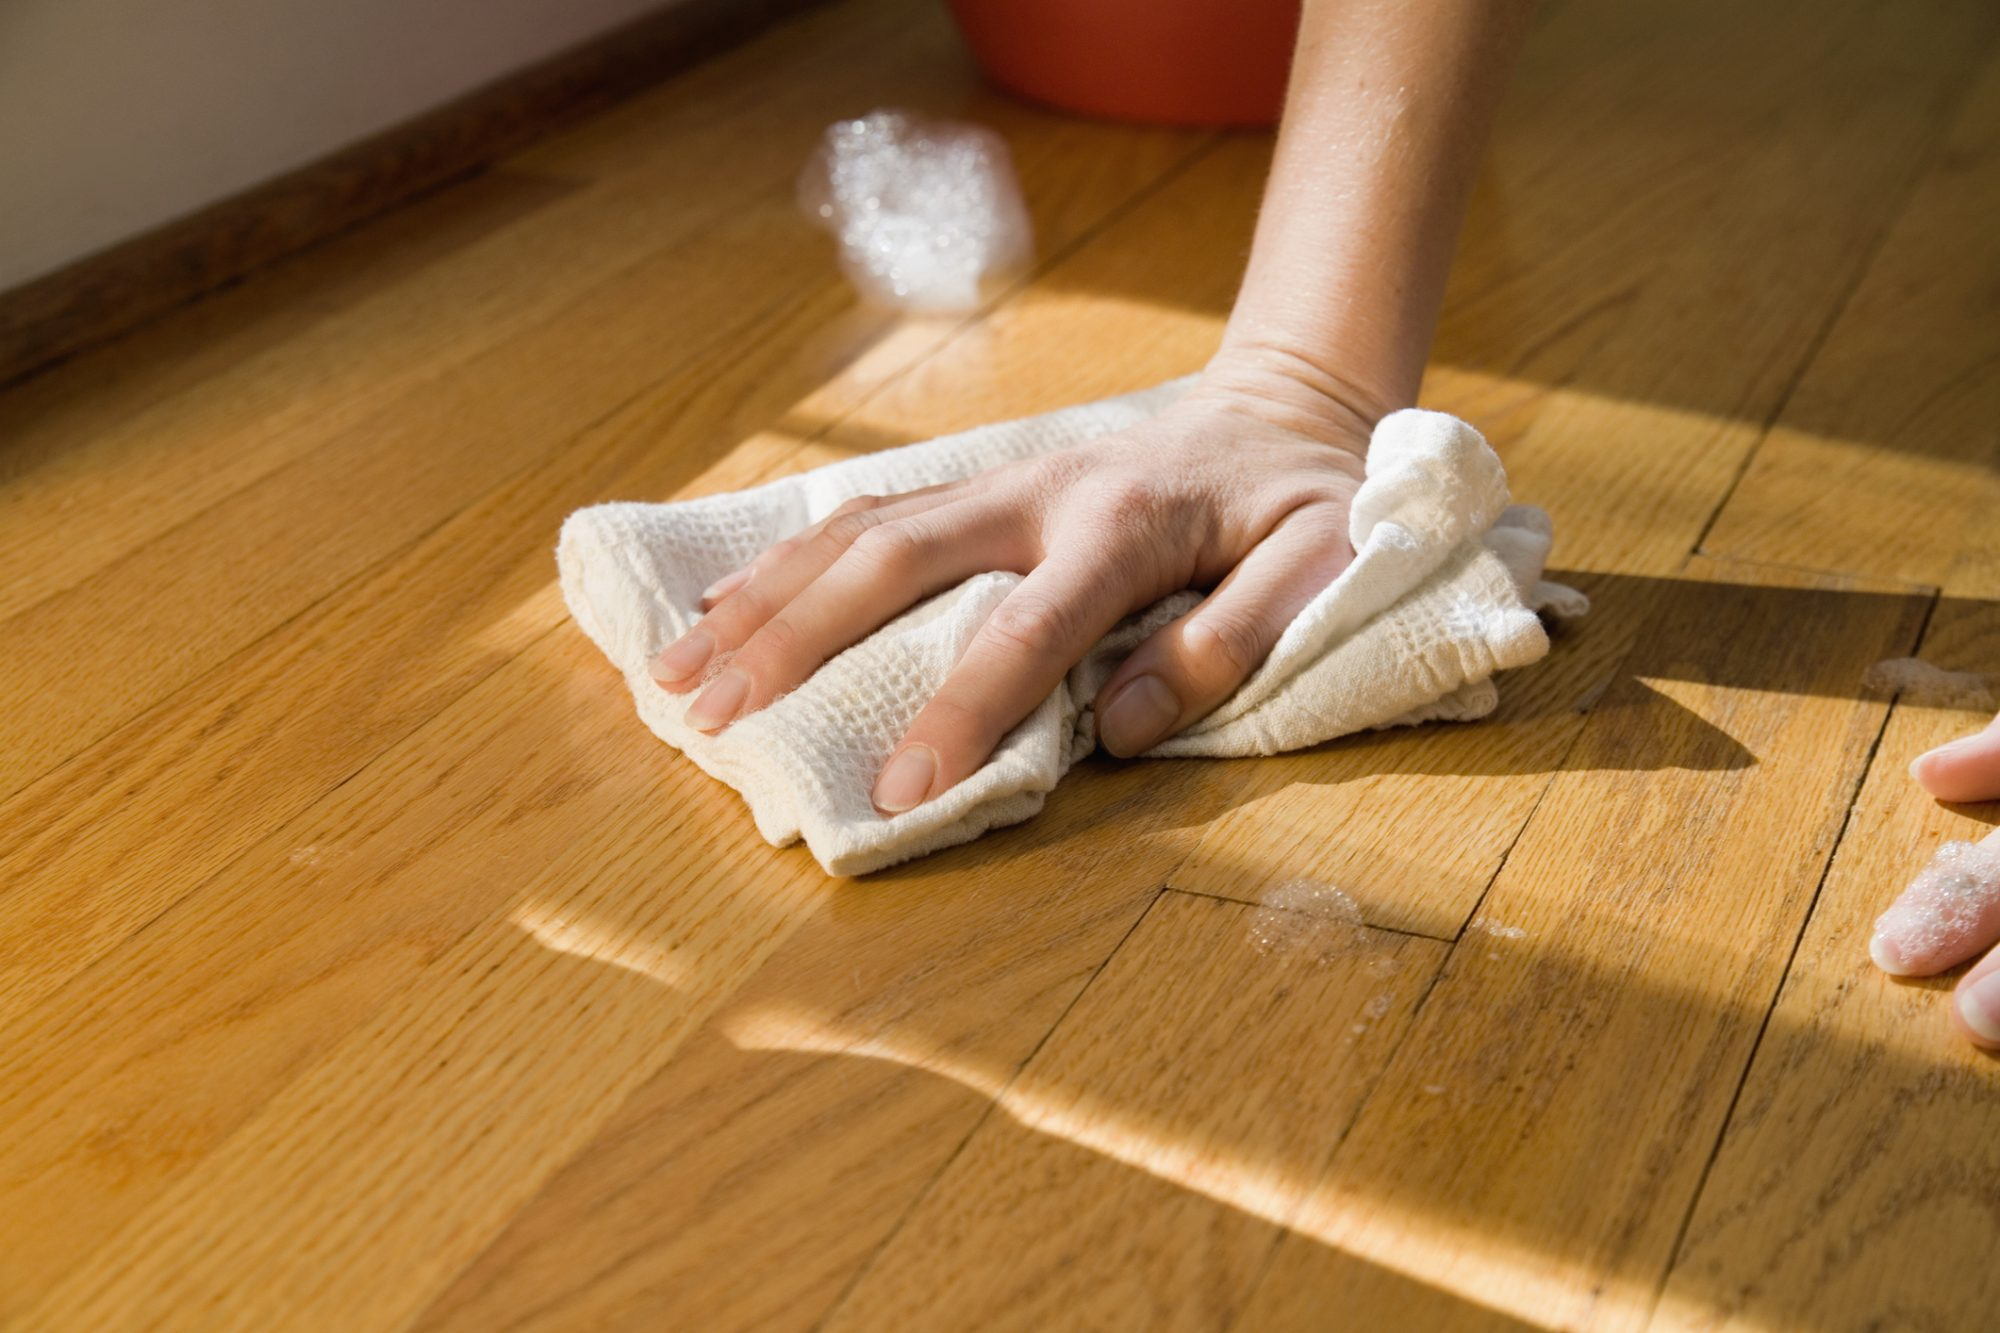 The Right Way To Clean Wood Floors